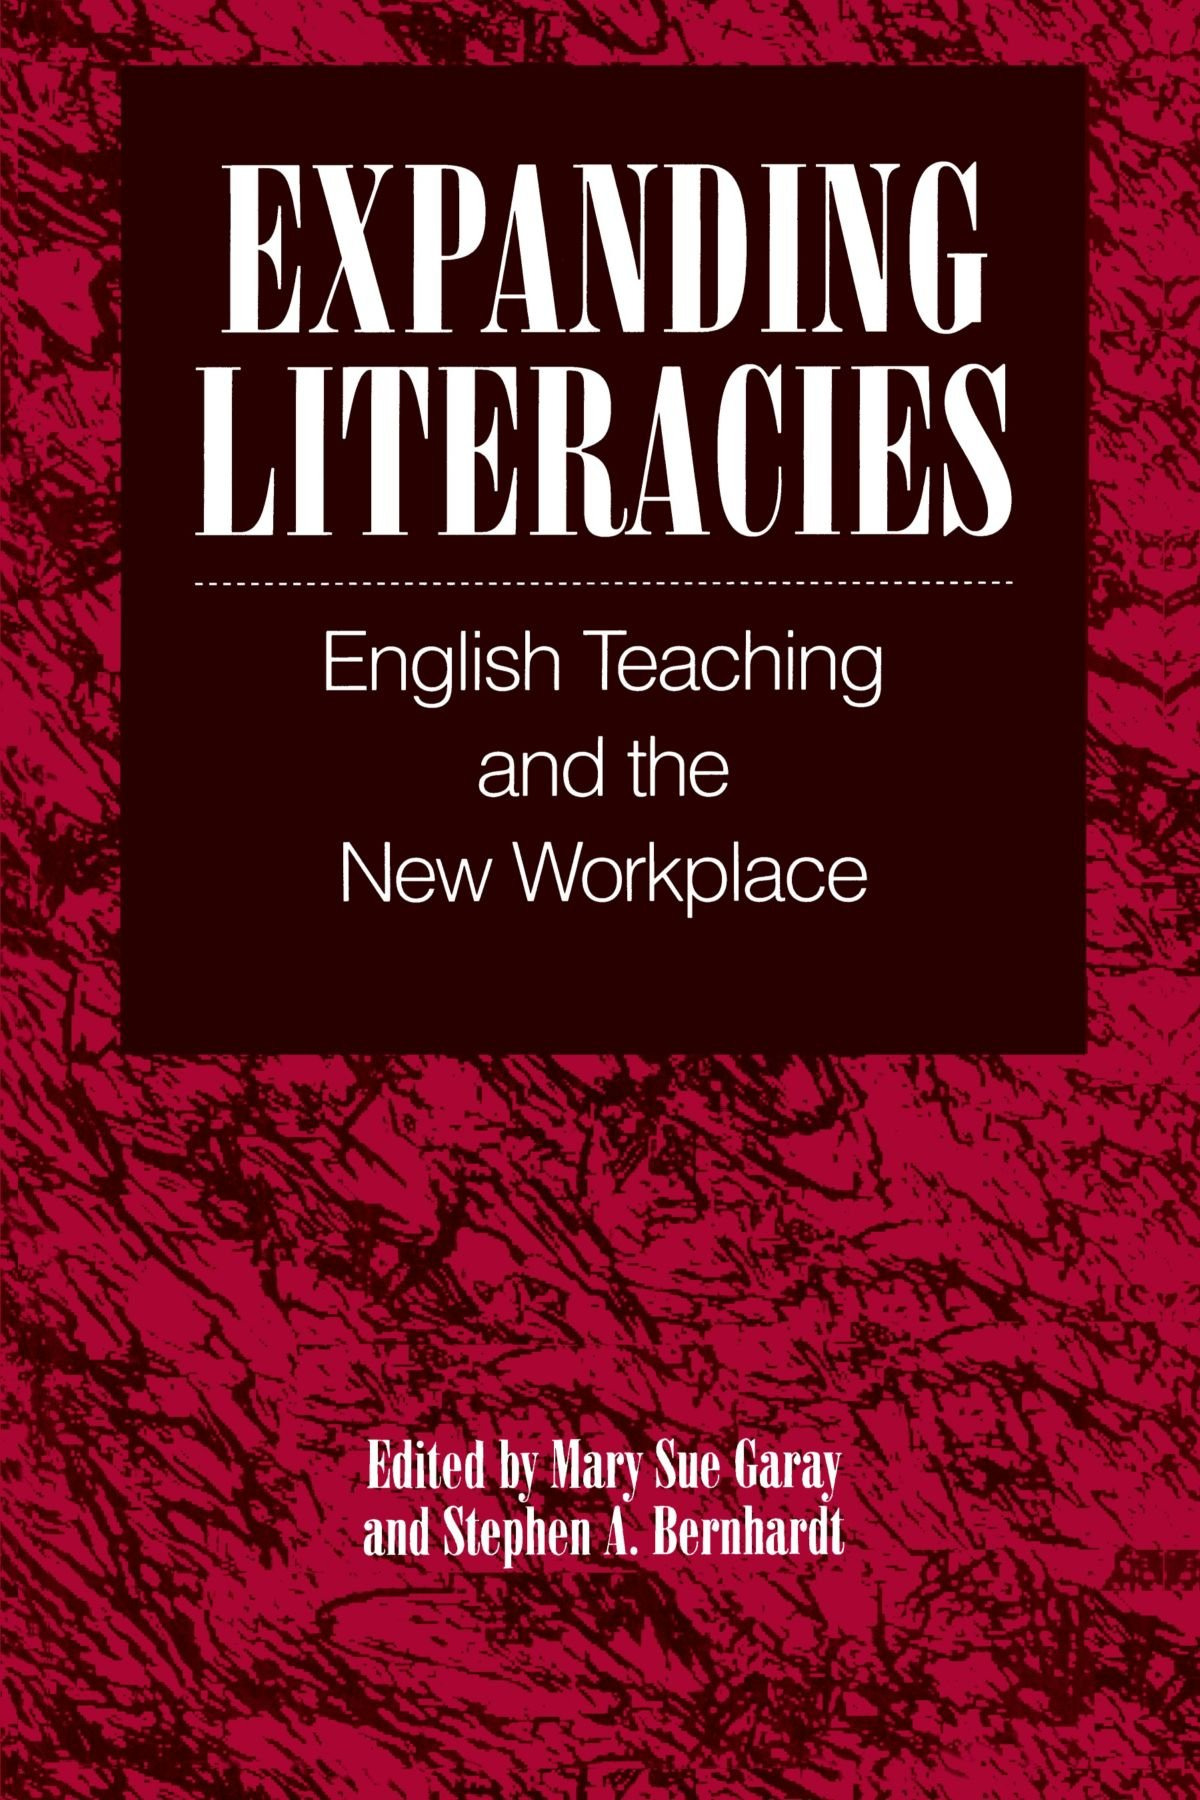 Expanding Literacies: English Teaching and the New Workplace (SUNY series, Literacy, Culture, and Learning: Theory and Practice)